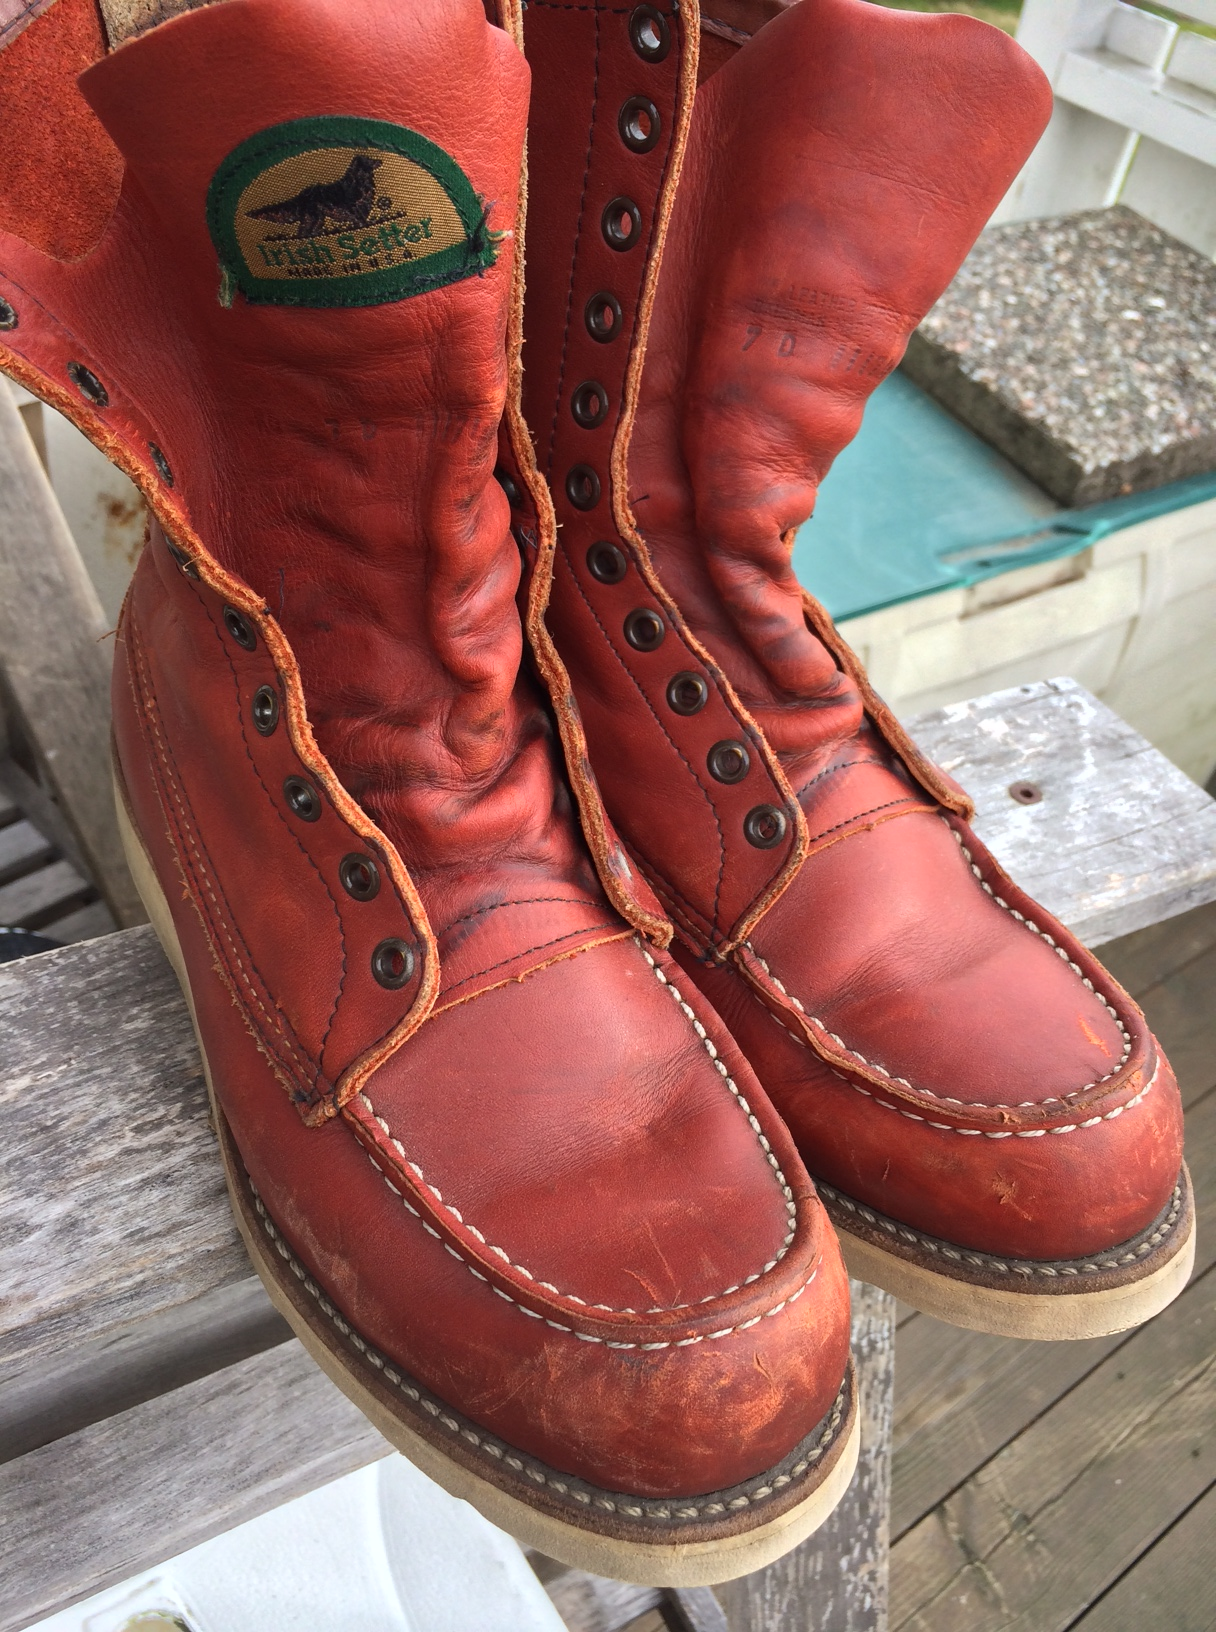 Further research shows that what I have lucked into is a pair of the Red  Wing Irish Setters, the iconic 877 work boots, introduced in 1952 and in  production ...